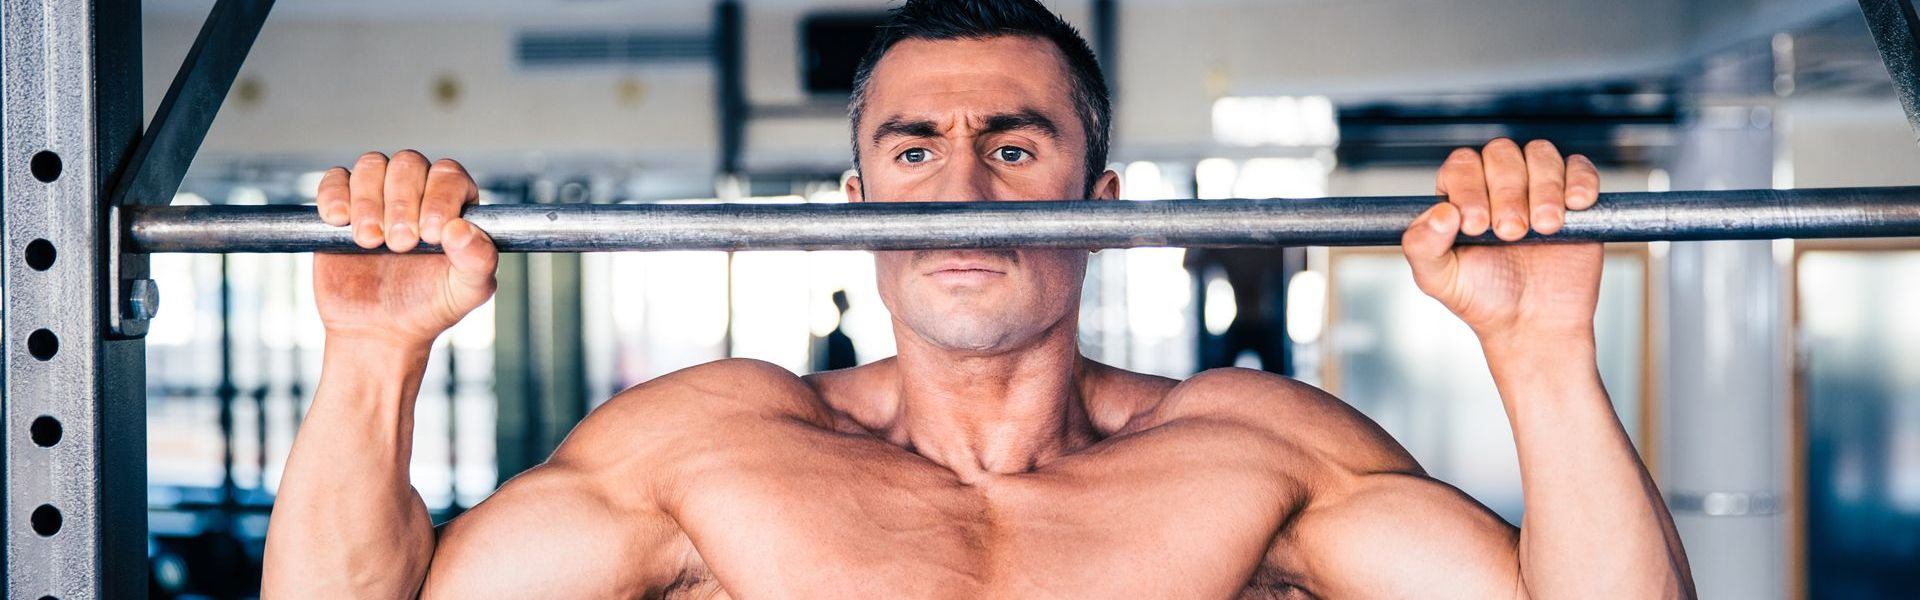 Prisoner Bodyweight Workout: The workoutyou can do anywhere!